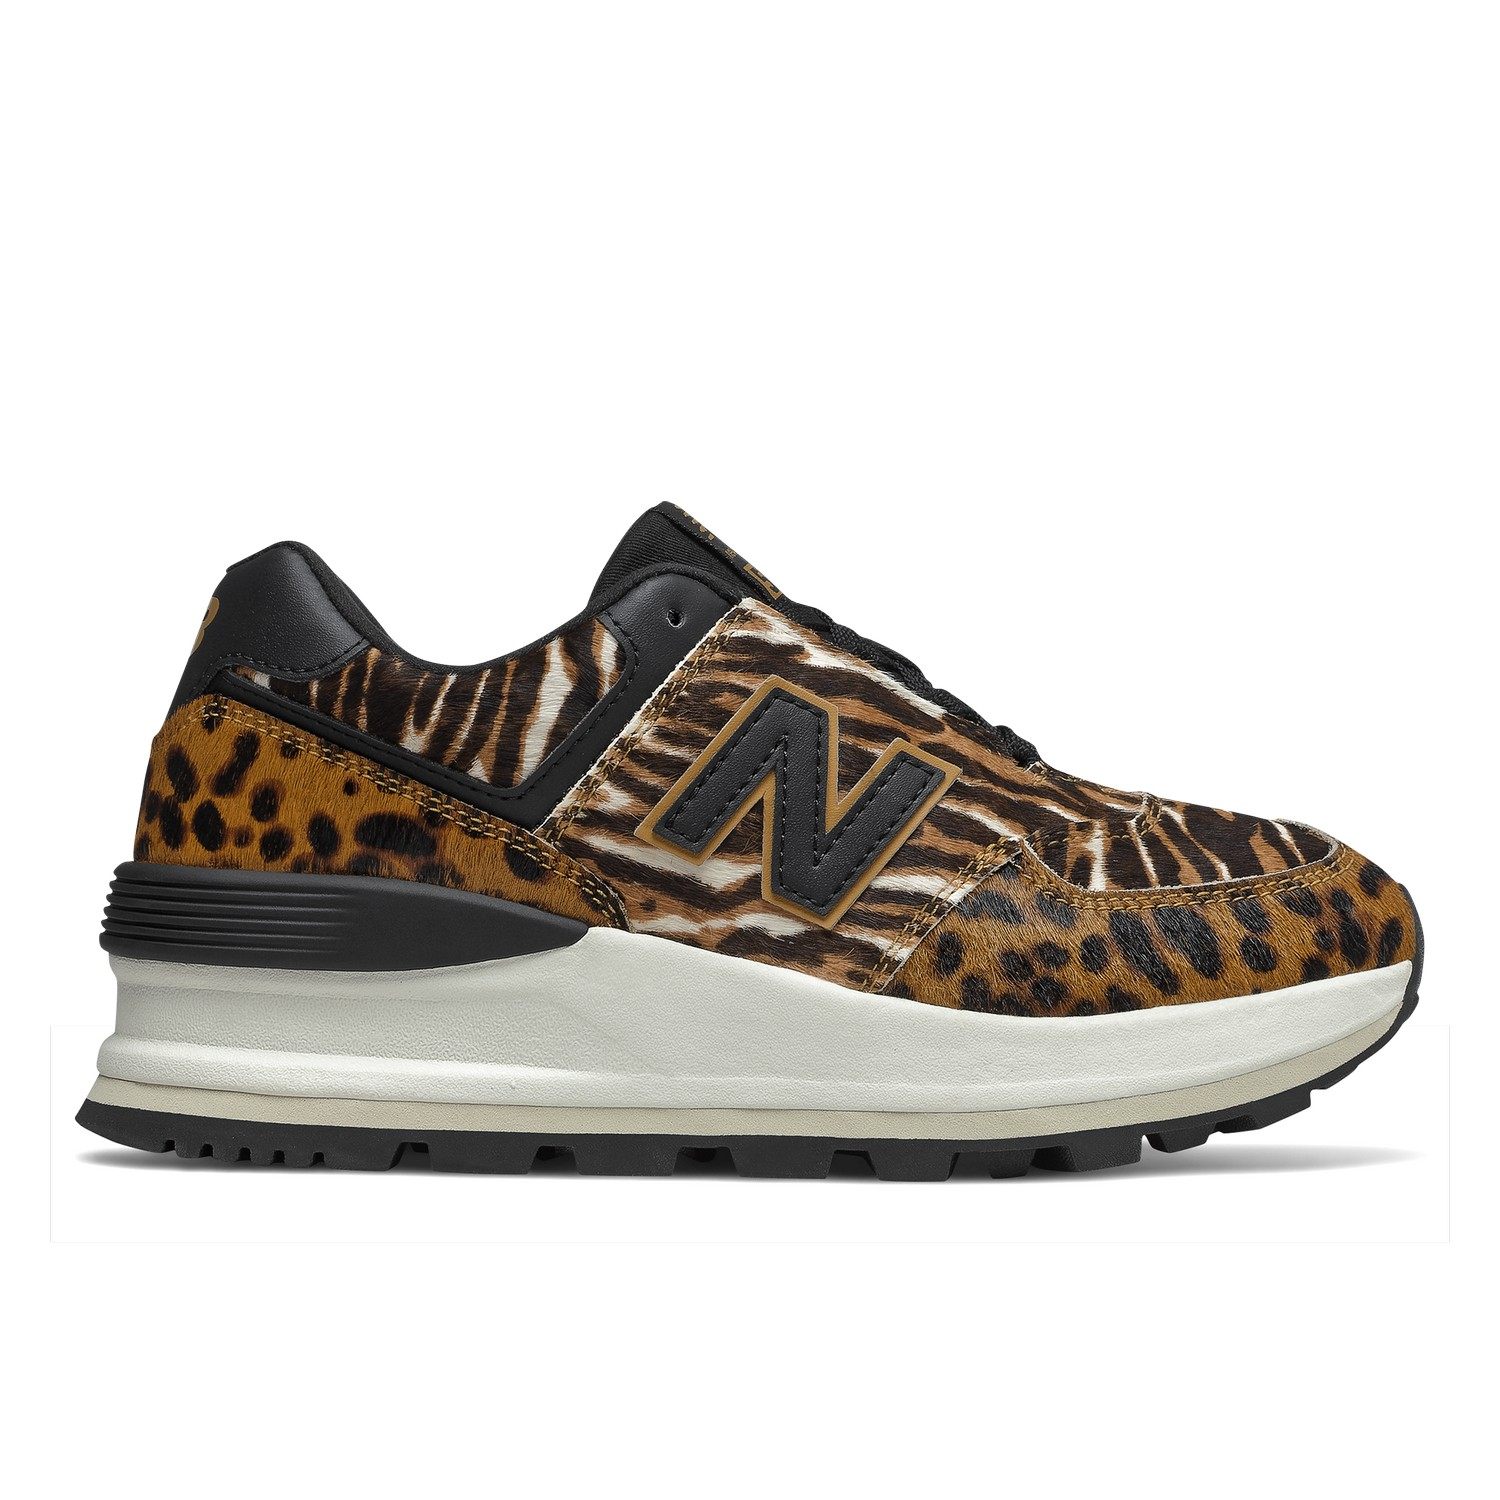 New Balance 574 EMISSIONS sneakers